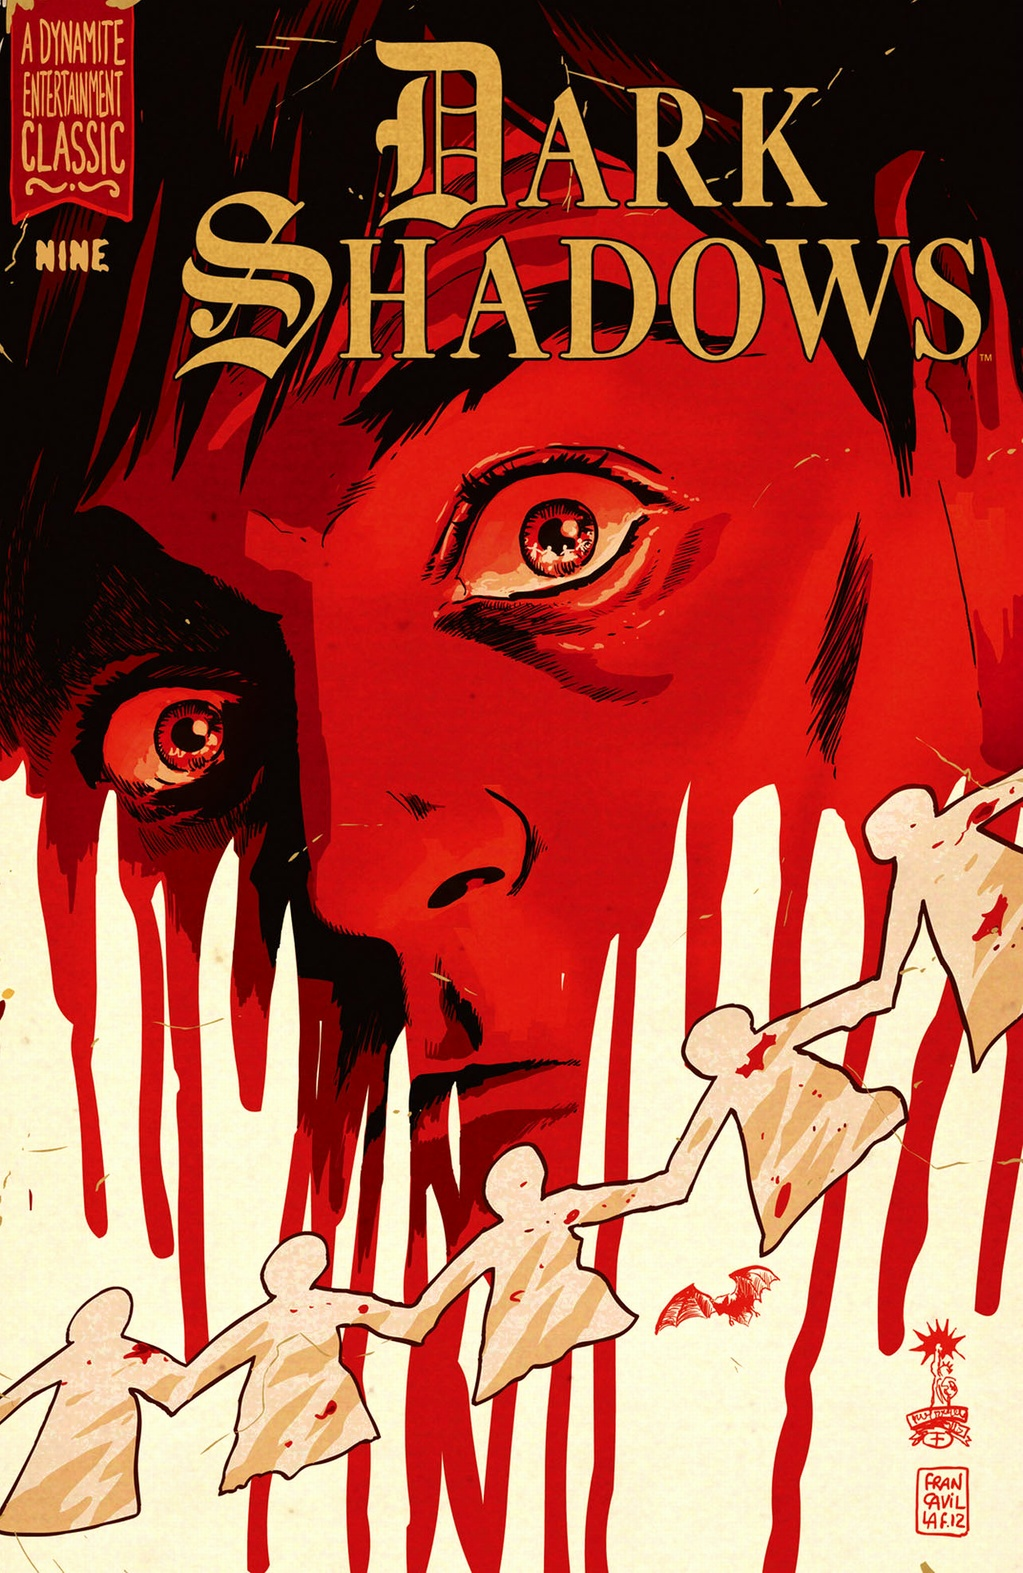 Dark Shadows #9 Publisher: Dynamite Writer: Mike Raicht Artist: Guiu Vilanova (cover by Francesco Francavilla) Colors: Carlos Lopez This is it! The battle that has been brewing for the last...